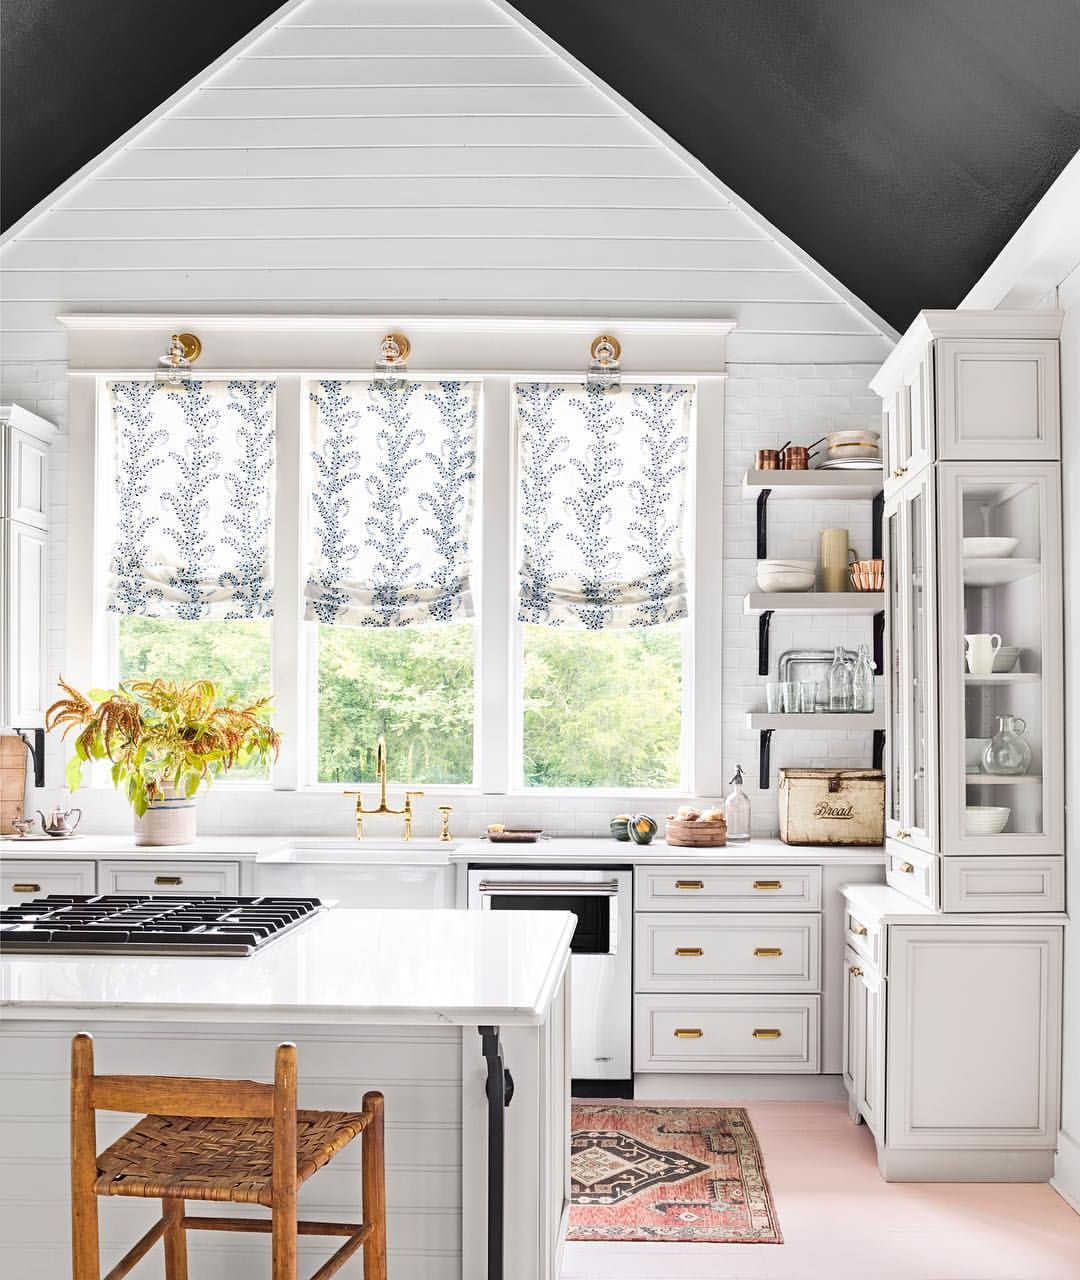 White Kitchen Dark Floors Colorful Window Treatment: White Kitchen With Black Ceiling, Pink Floors. See This